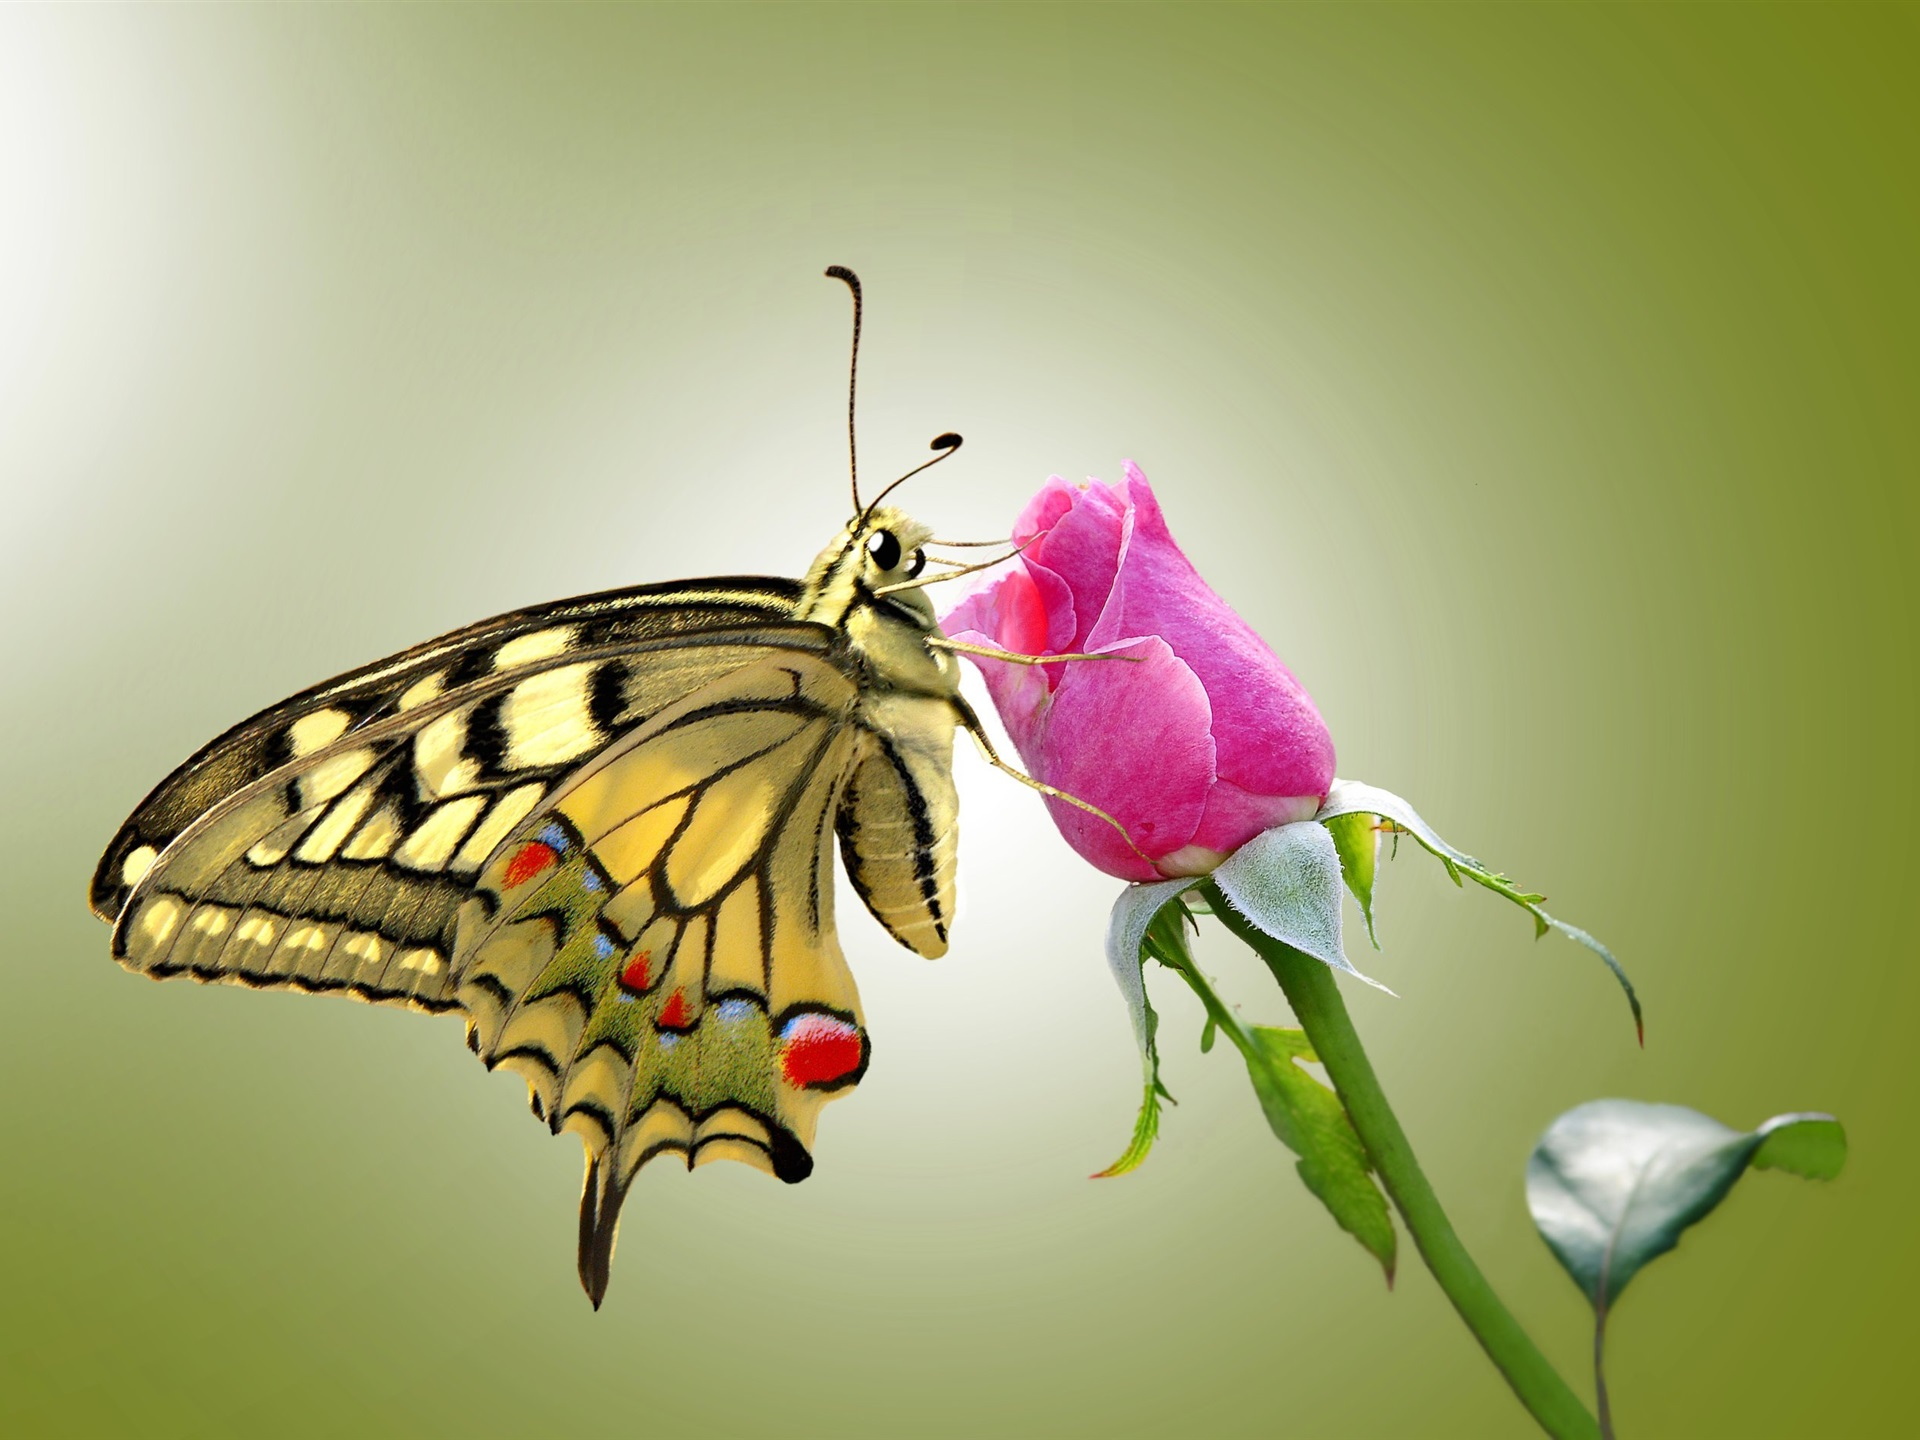 Butterfly and pink rose wallpaper 1920x1440